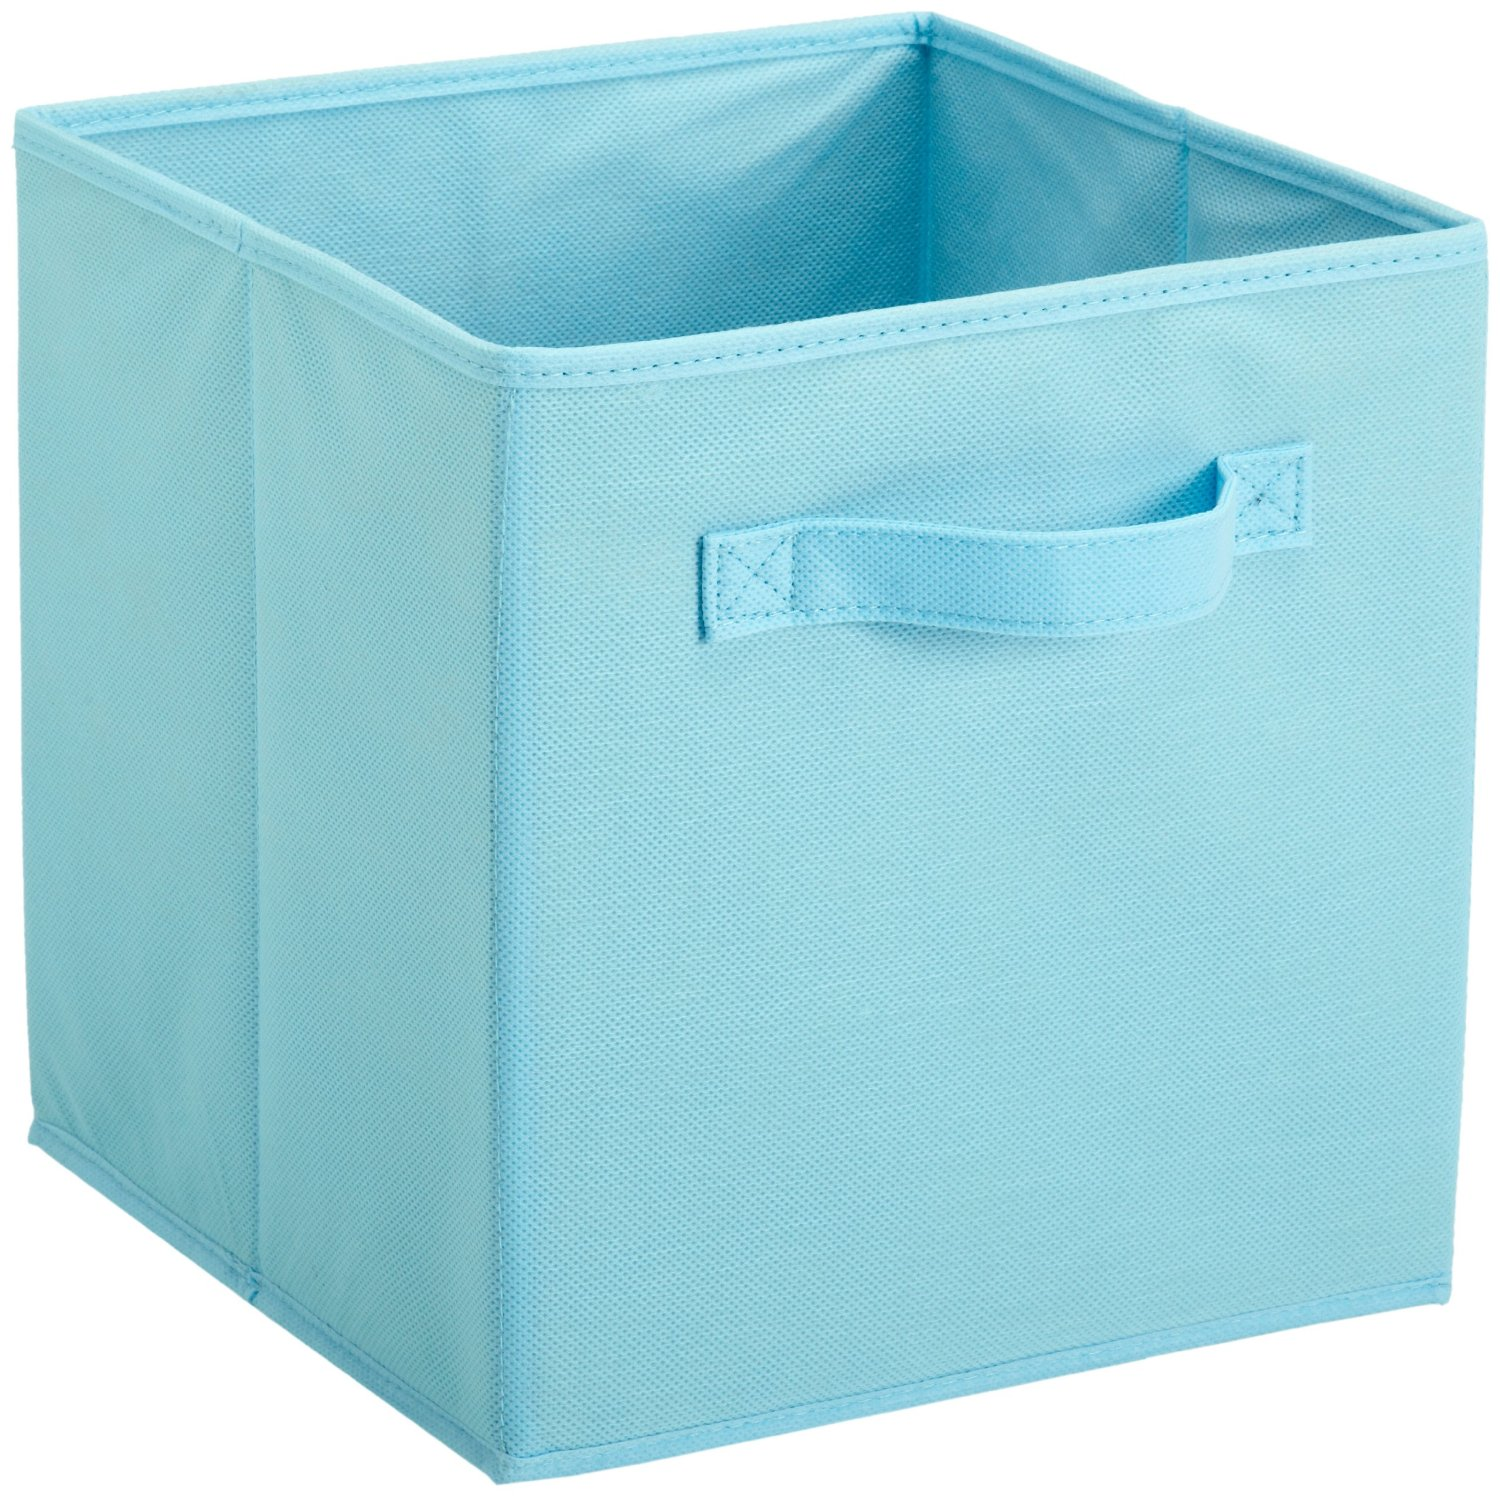 Charmant ClosetMaid 5879 Cubeicals Fabric Drawer Light Blue